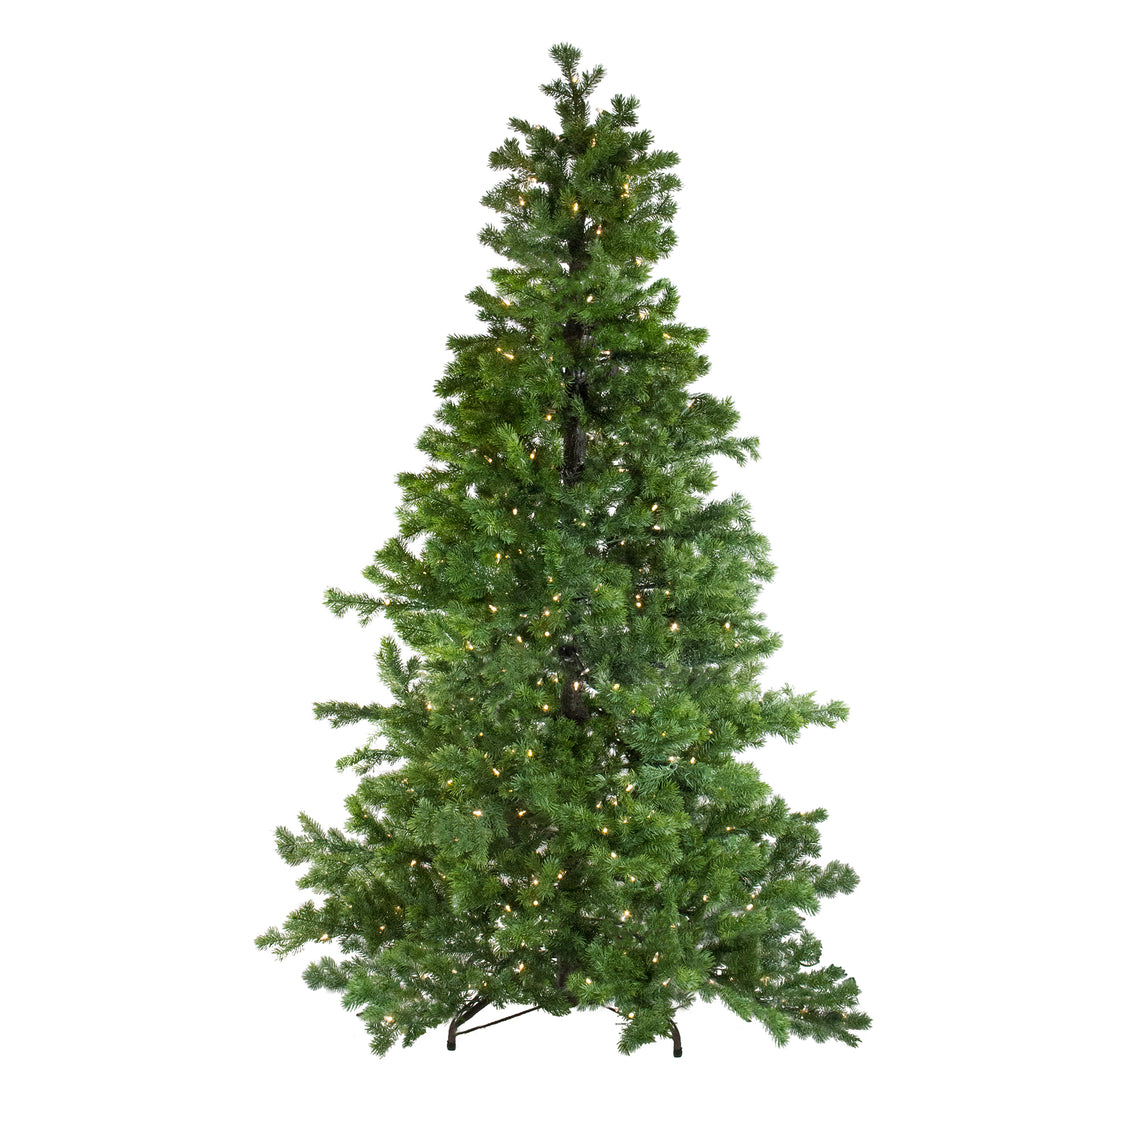 6.5' Layered Pine Instant Power Artificial Christmas Tree - Dual Color LED Lights